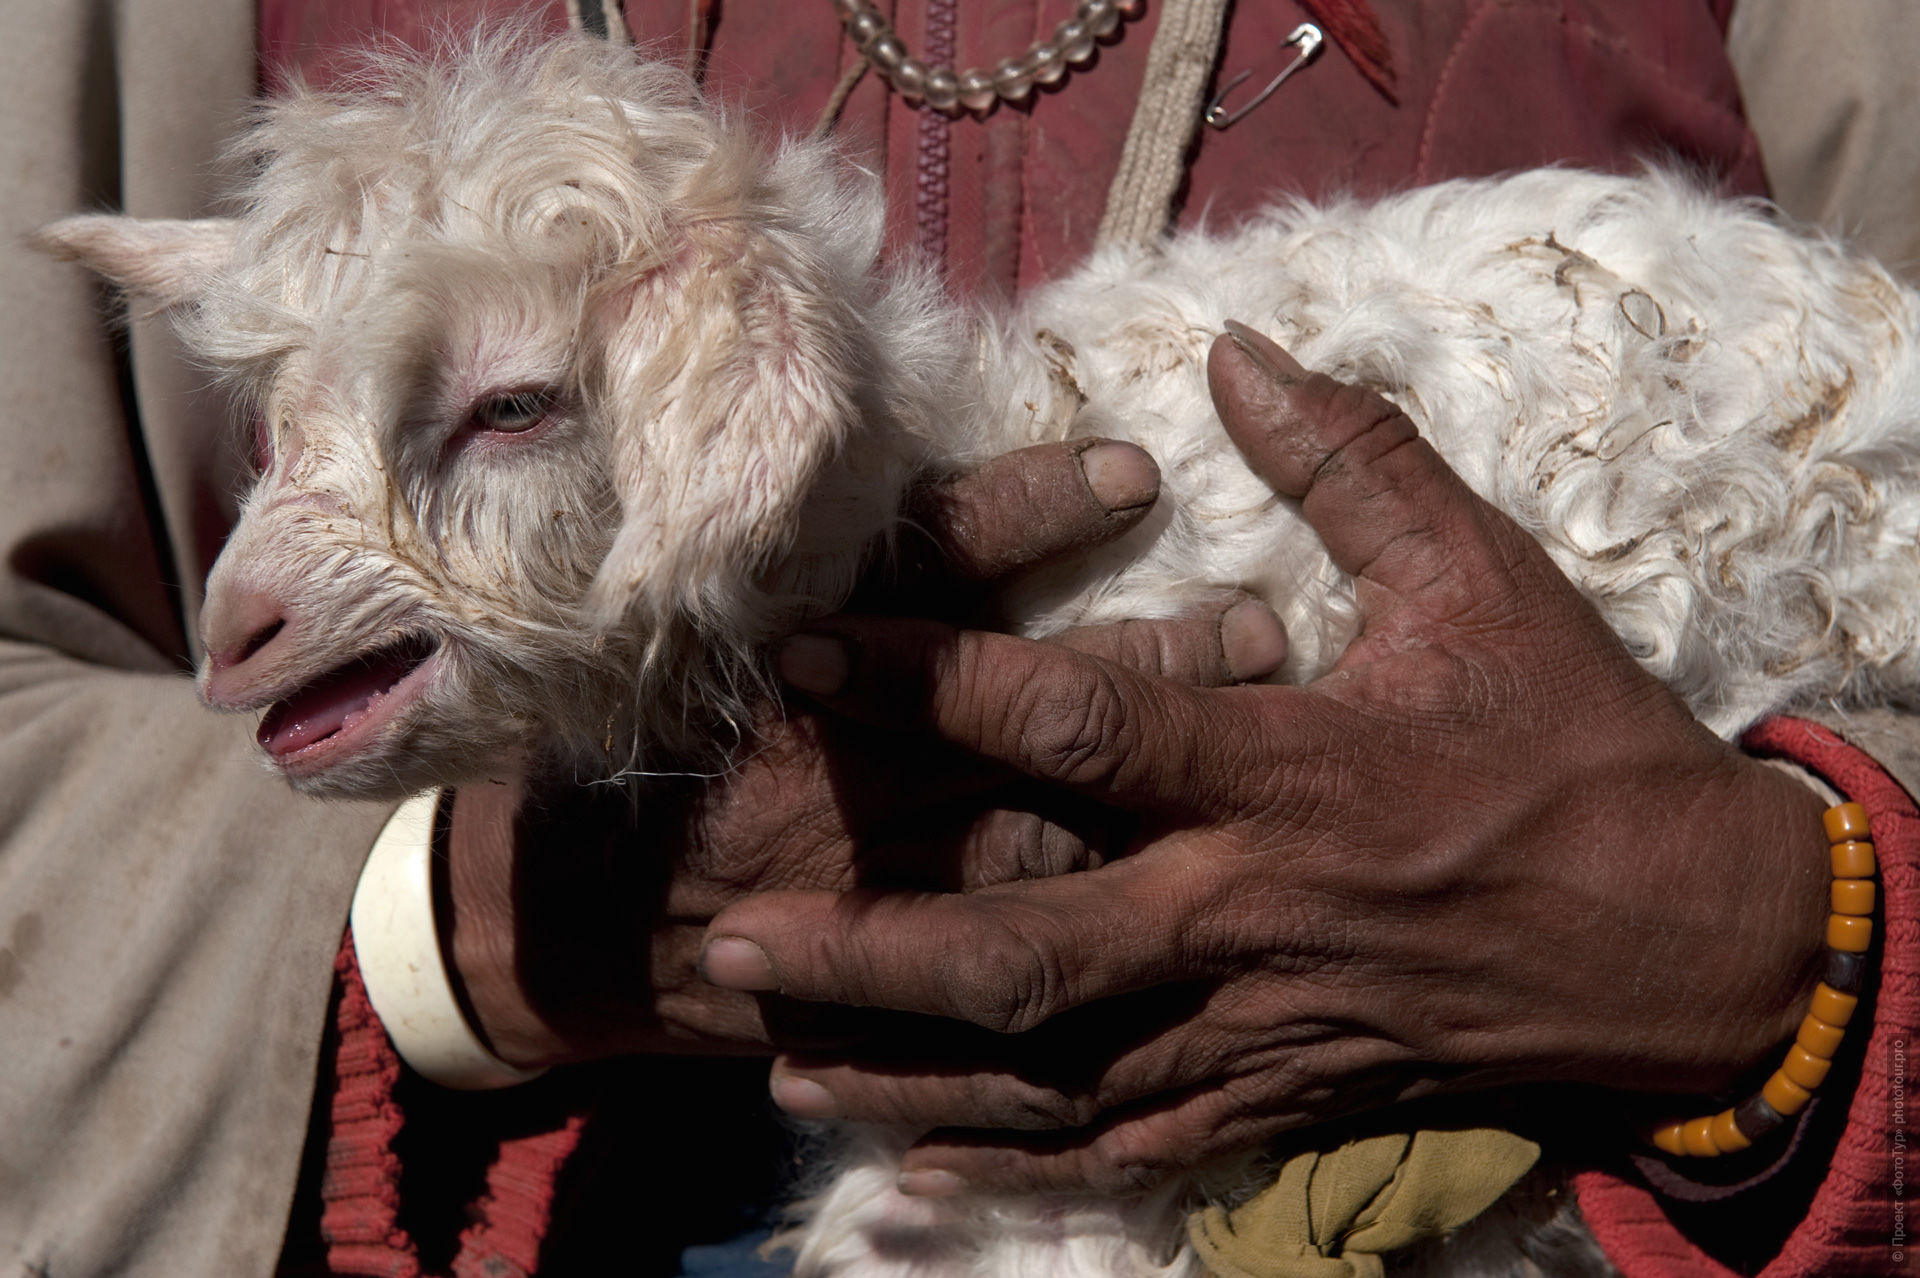 Newborn sheep on the hands of a shepherd. Photo tour to Tibet for the Winter Mysteries in Ladakh, Stok and Matho monasteries, 01.03. - 03/10/2020